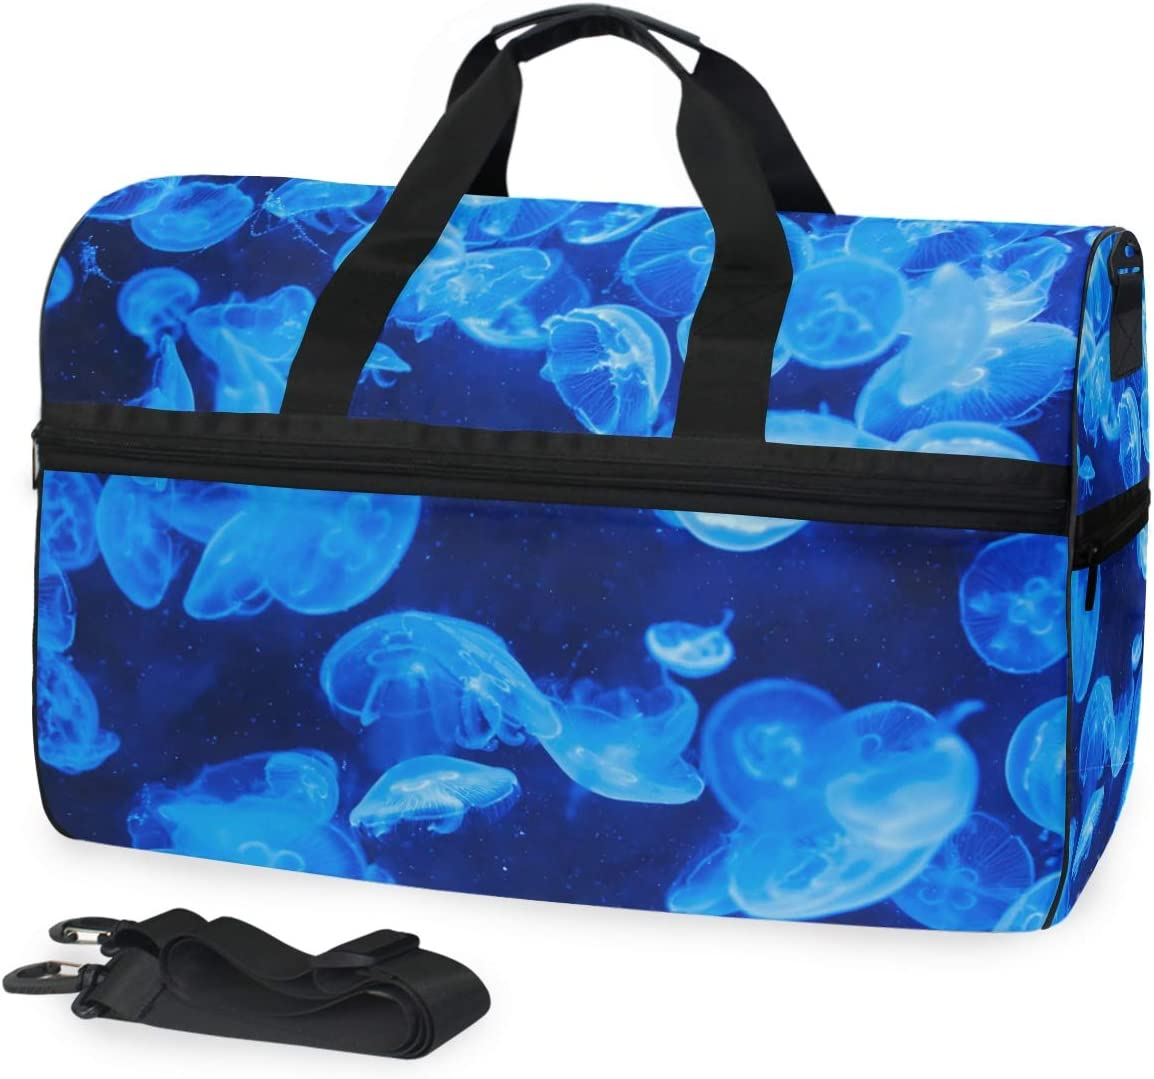 FAJRO Gym Bag Travel Duffel Express Weekender Bag Blue Jellyfish Deep Ocean Carry On Luggage with Shoe Pouch